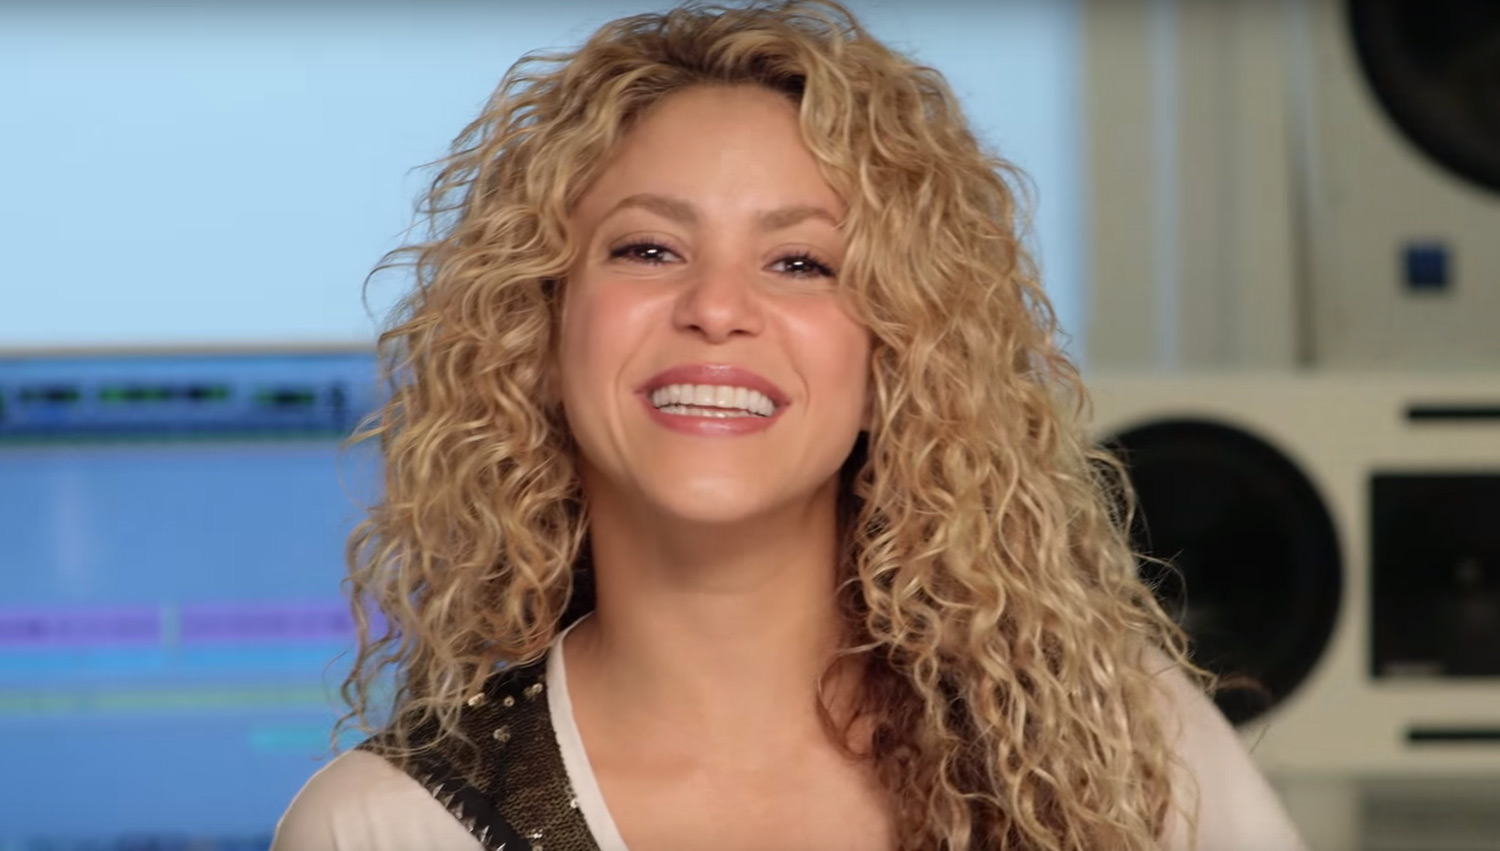 Shakira Shares New Scenes From 'Zootopia' in 'Try ... Shakira